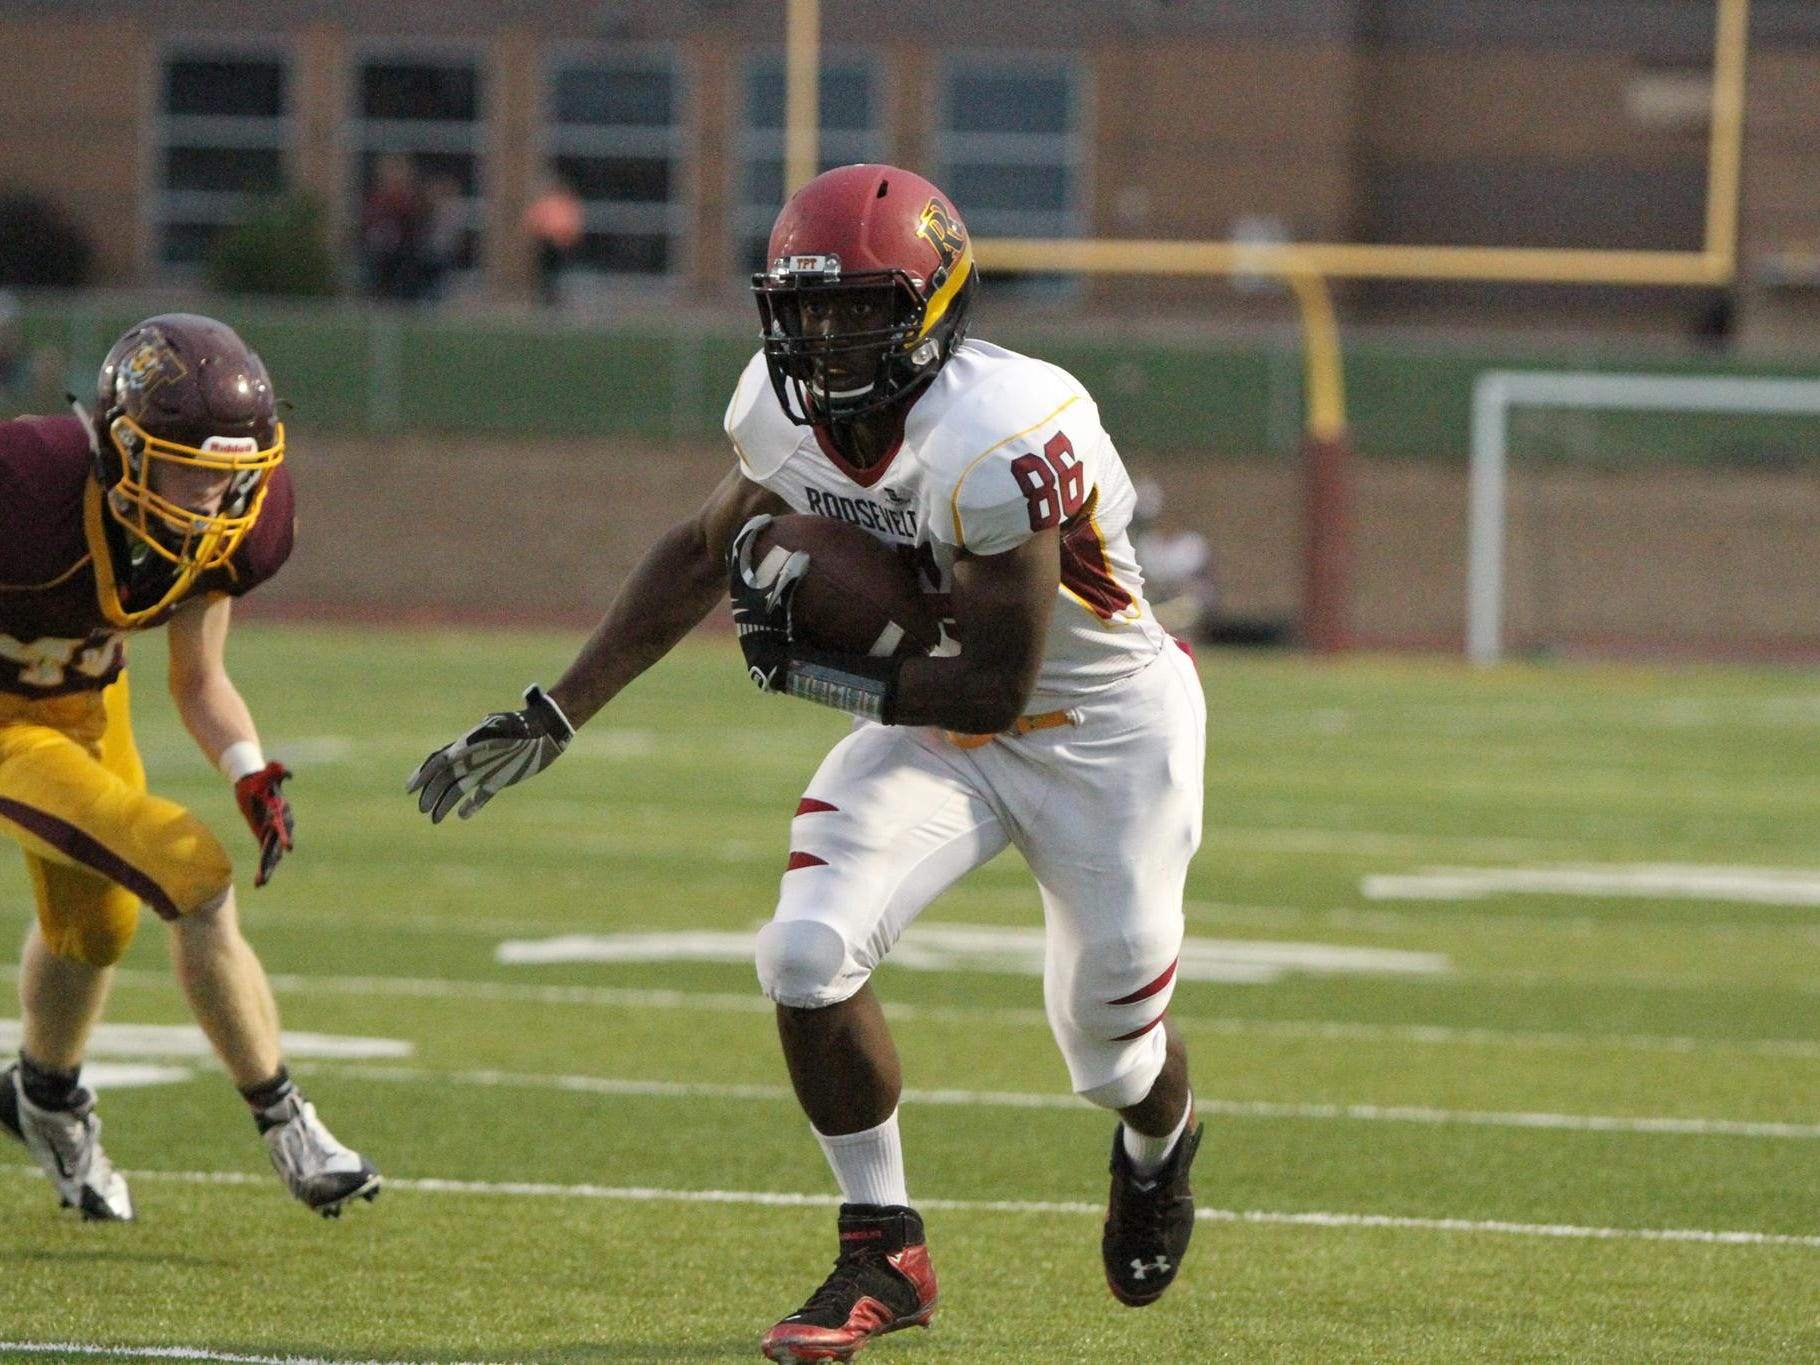 Roosevelt's DeMareio Hester moves up field after catching a pass as Harrisburg's Michael Curry pursues.